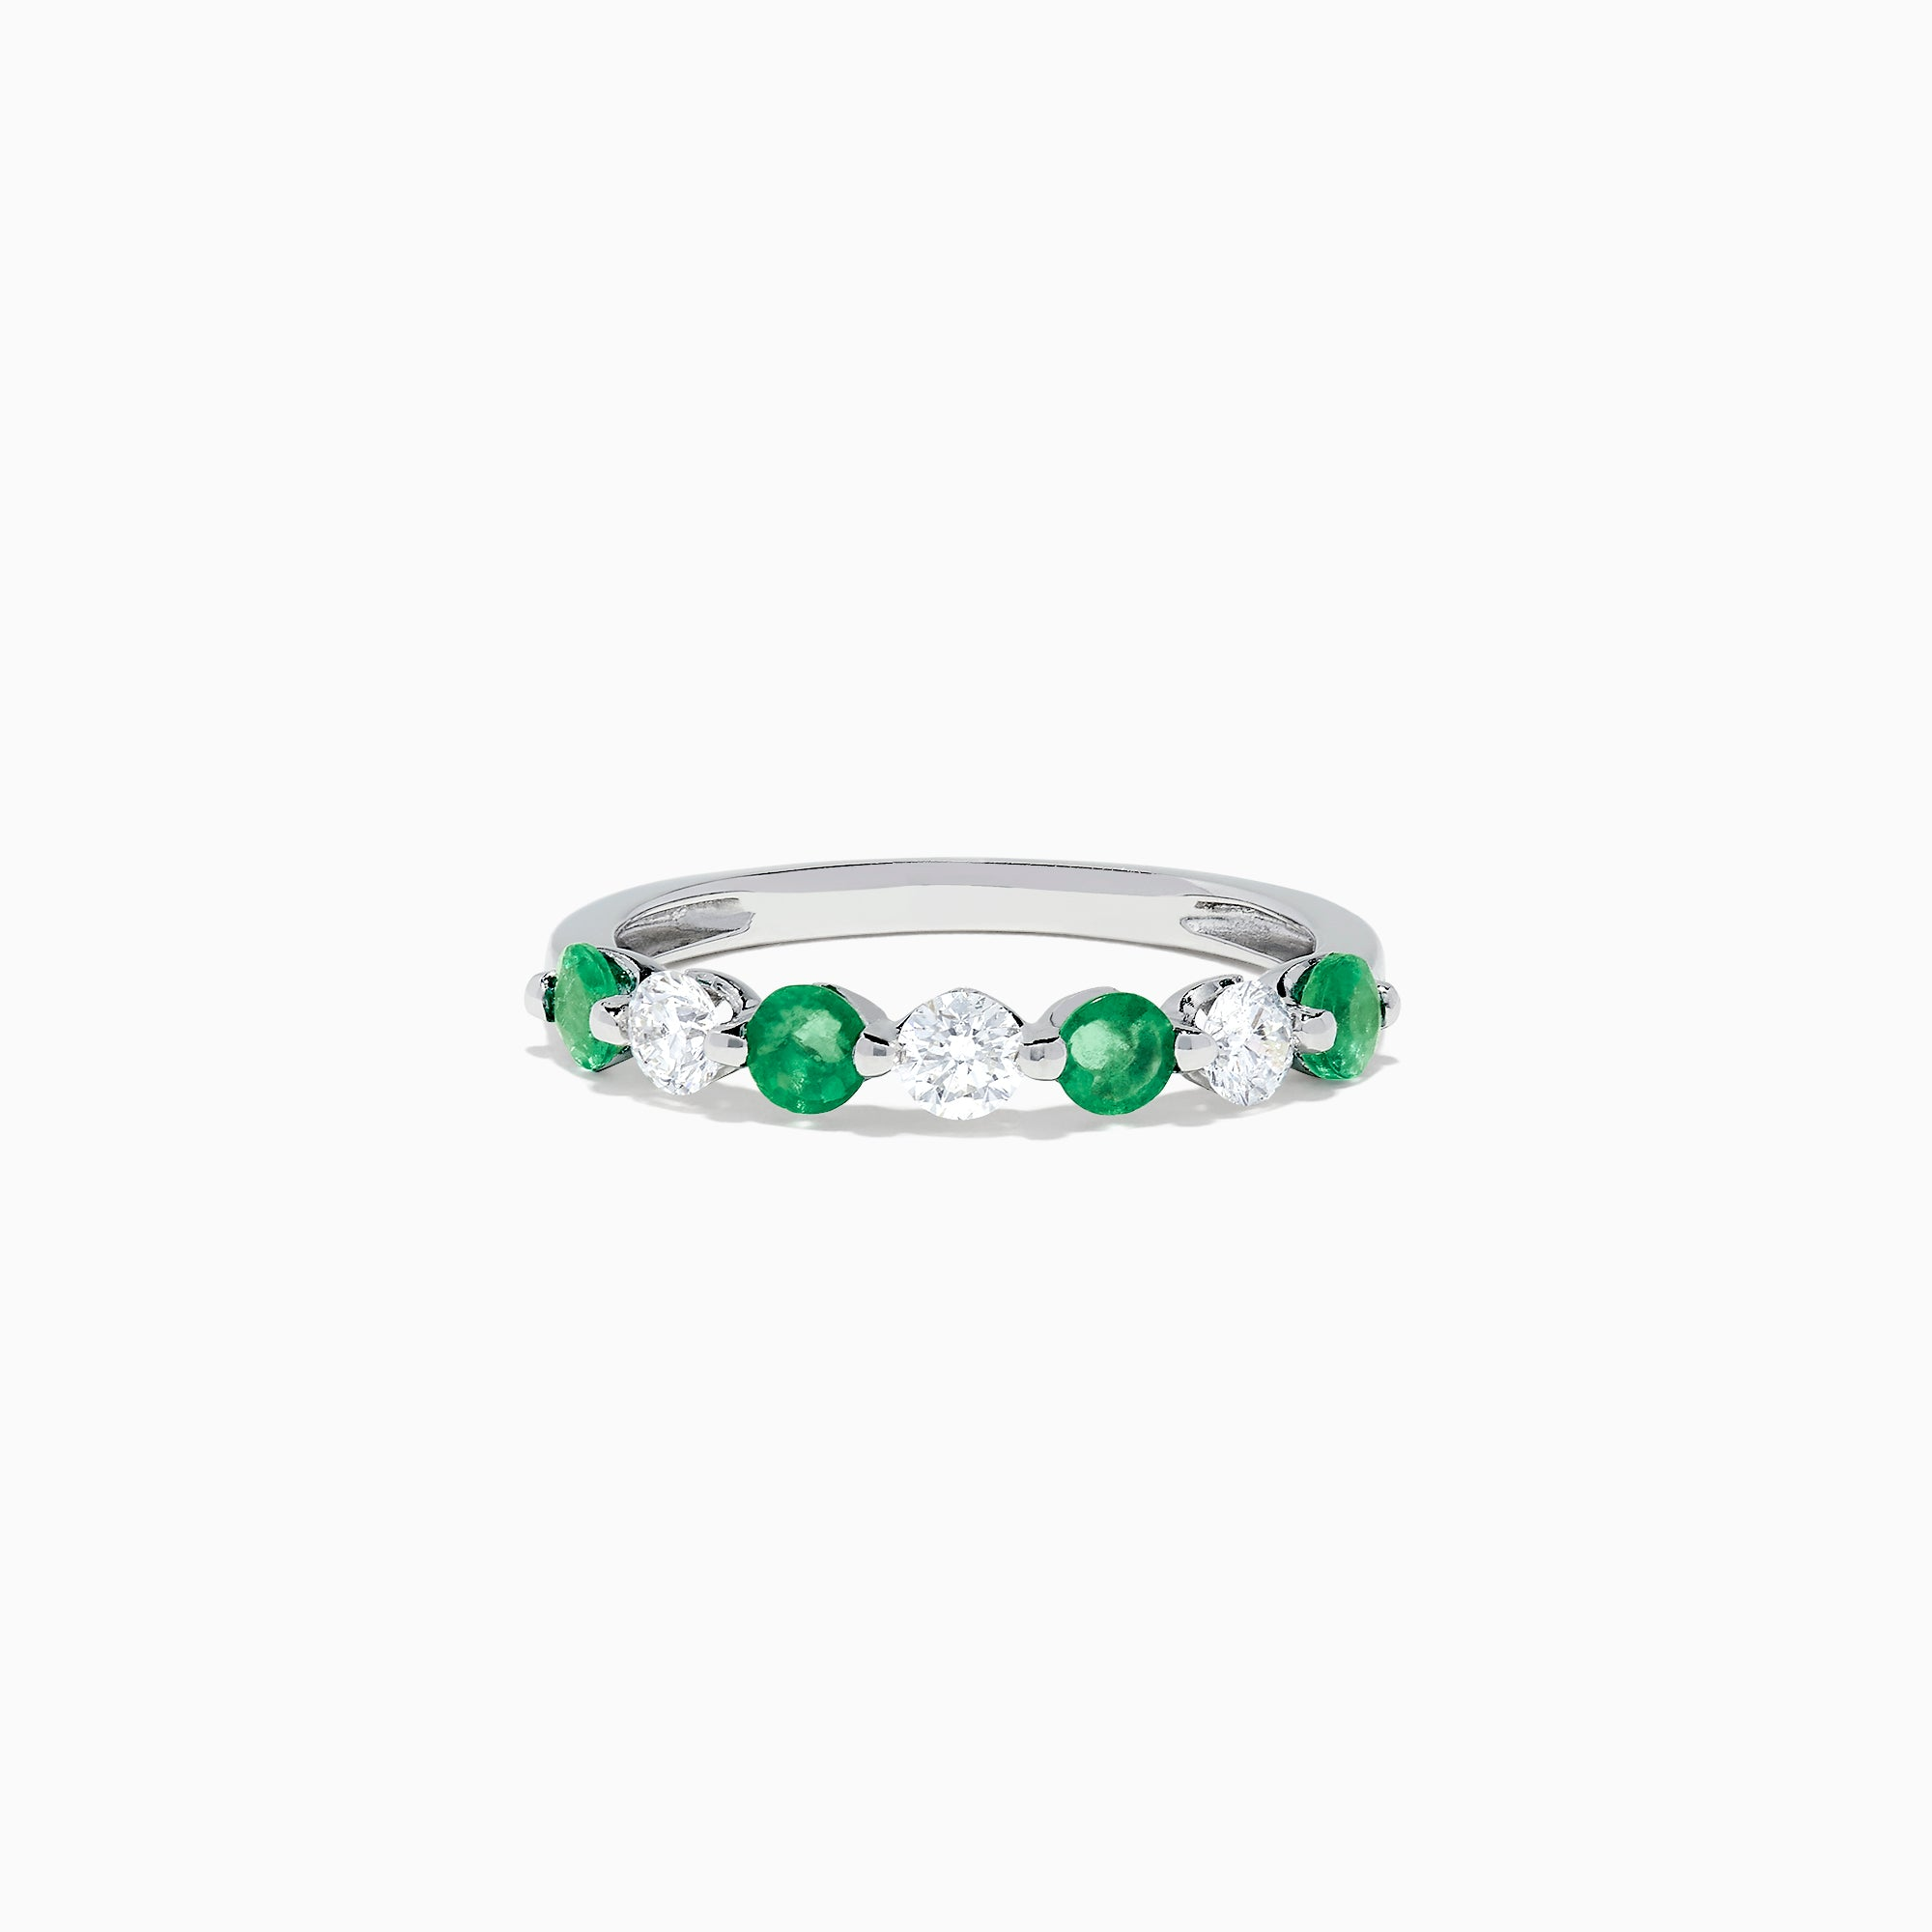 Effy Brasilica 14K White Gold Emerald and Diamond Ring, 0.81 TCW